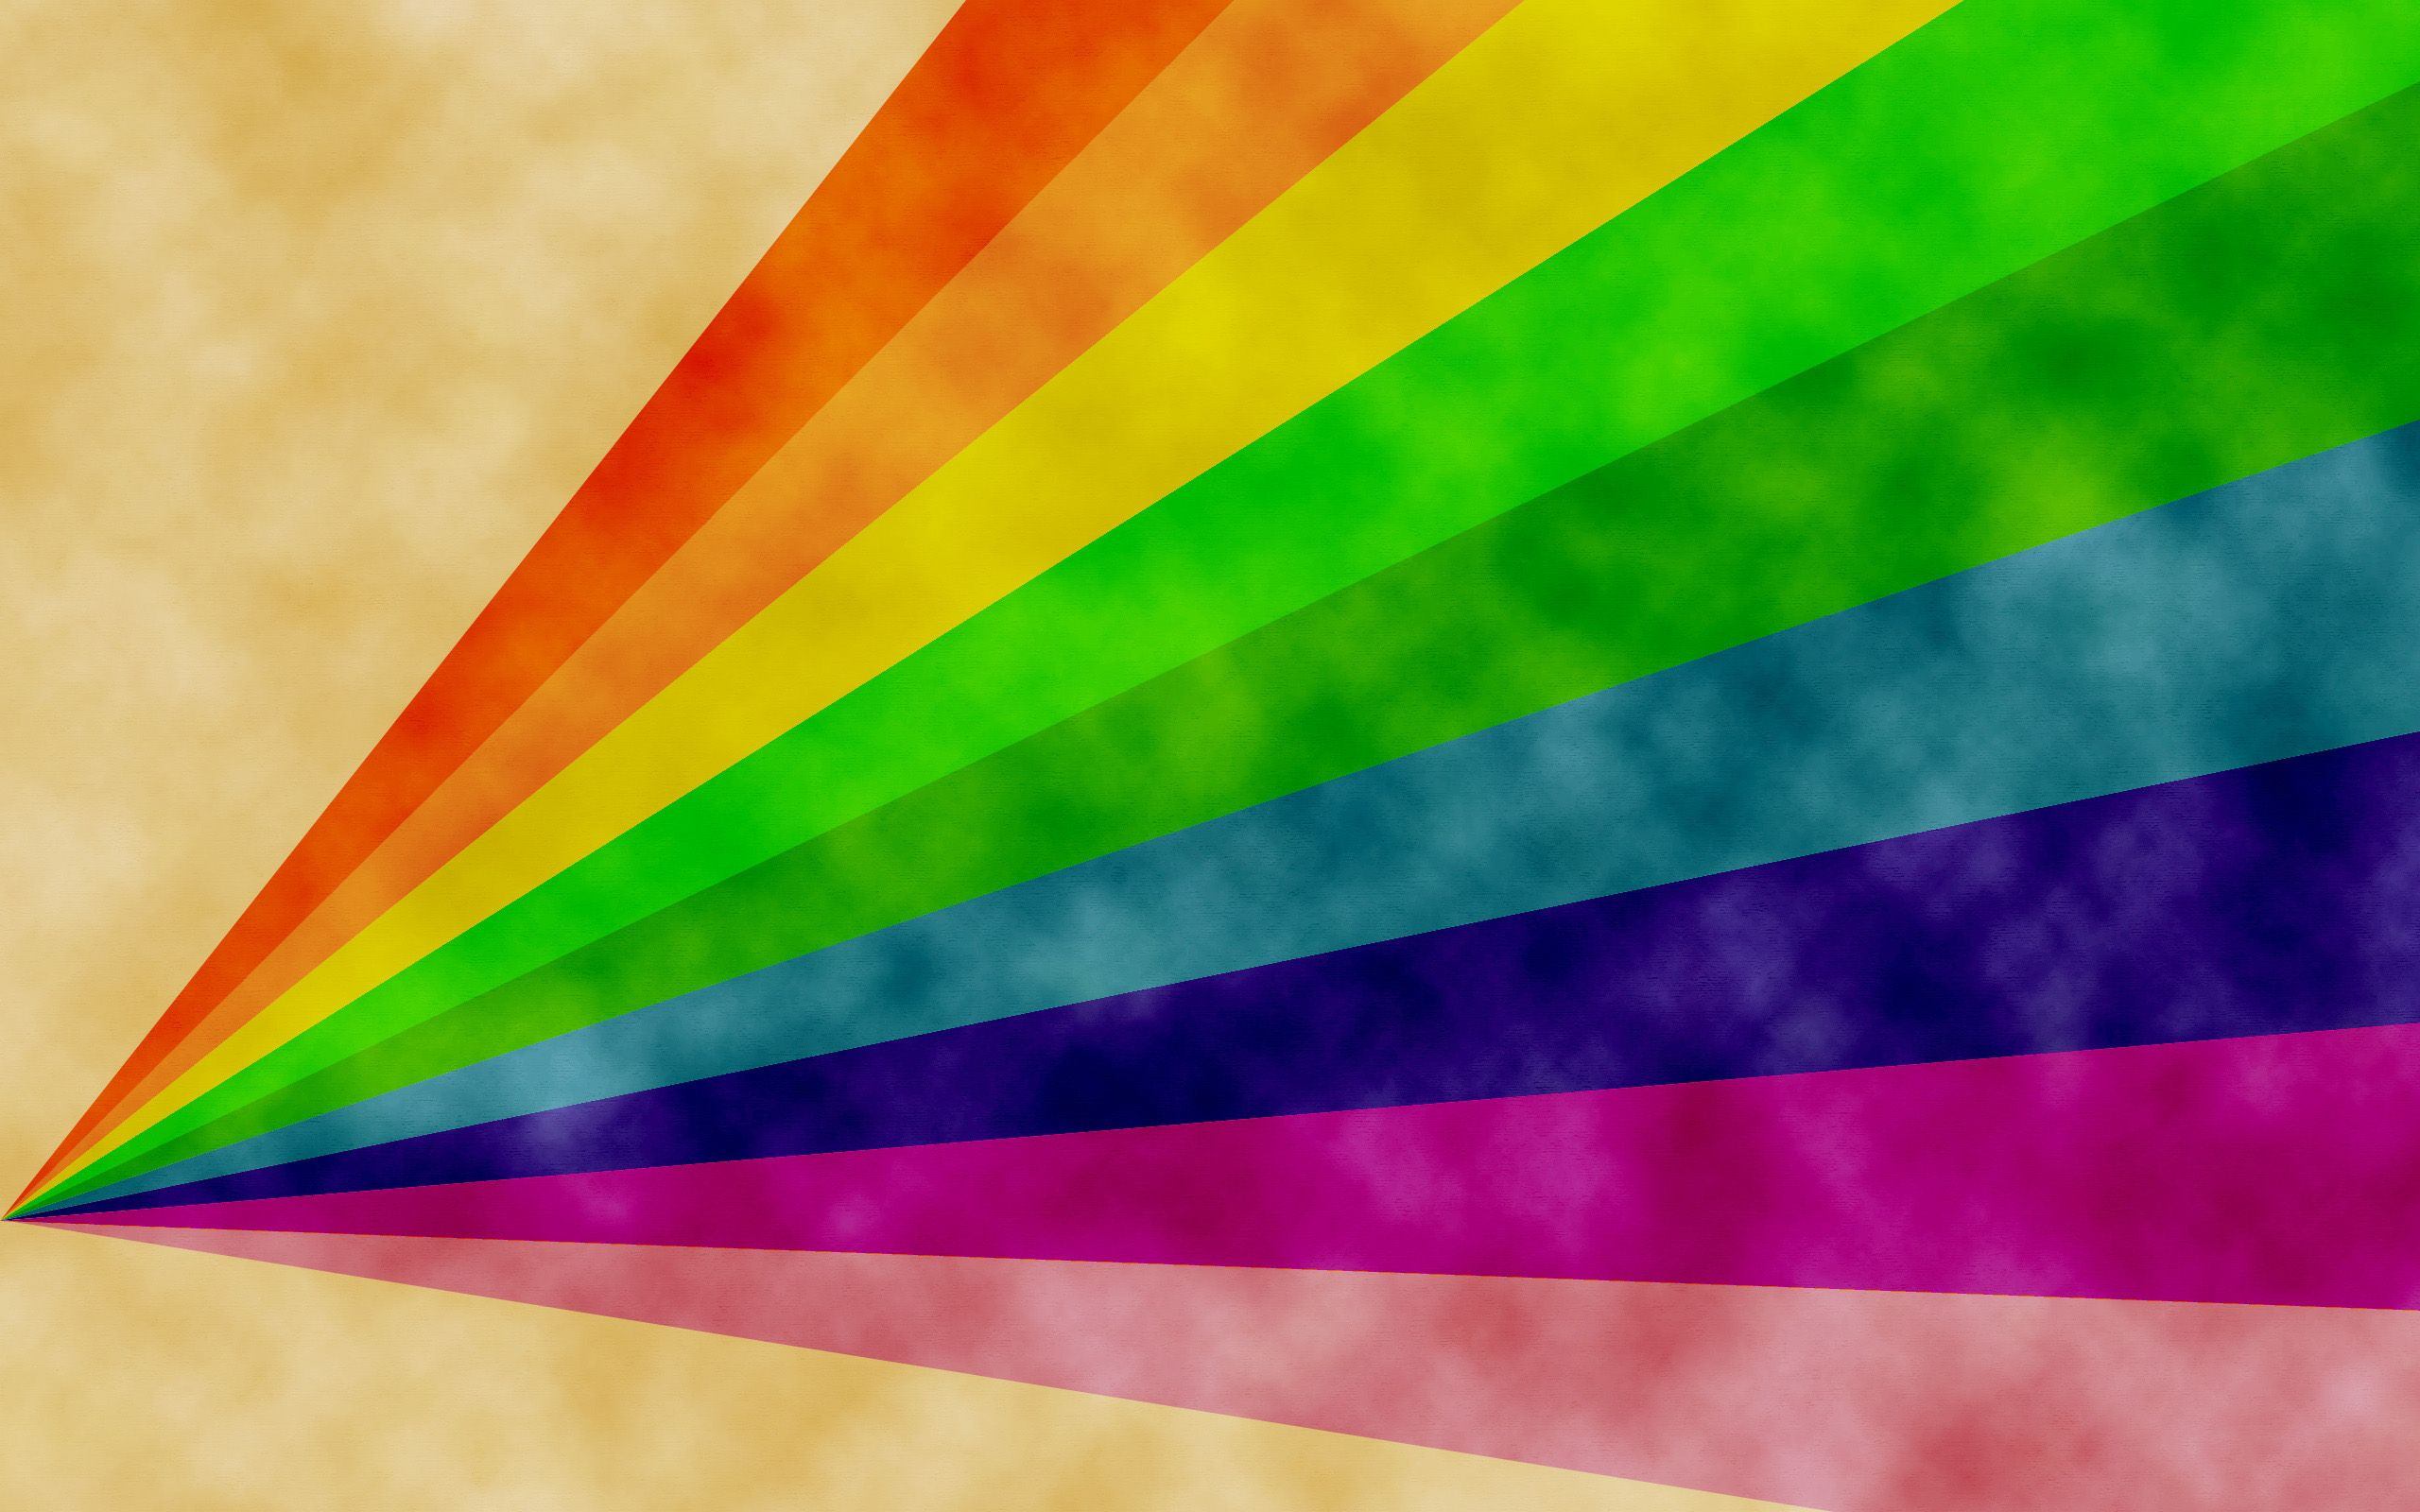 2560x1600 Download 2560x1600 Rainbow On Paper Wallpaper